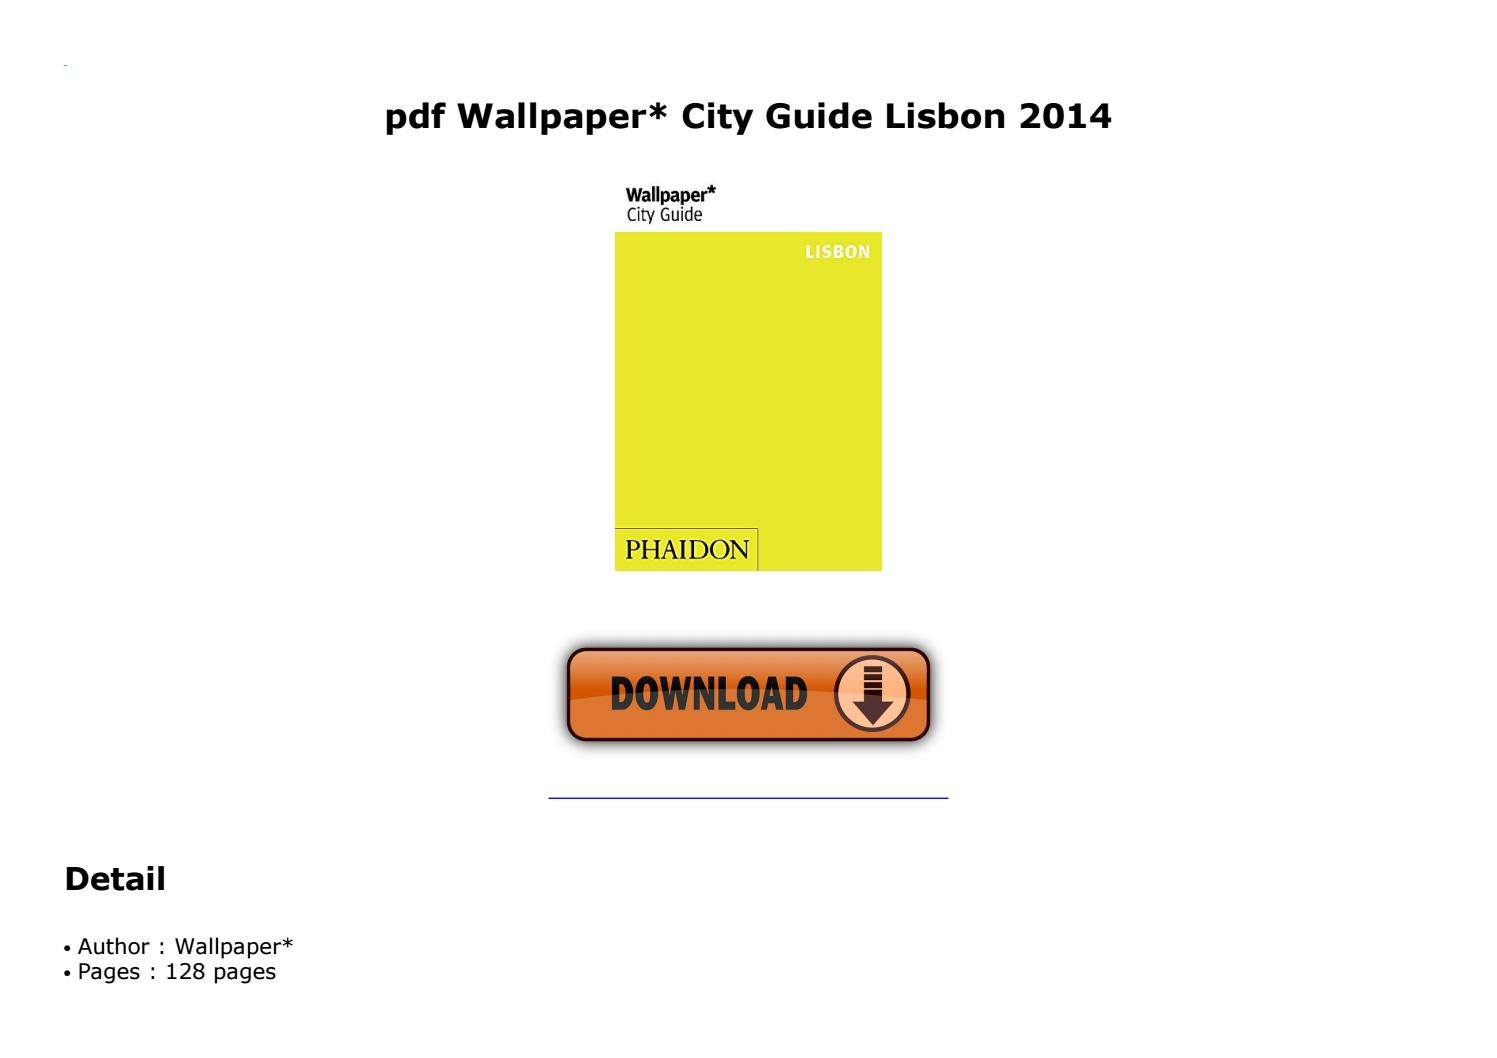 pdf Wallpaper* City Guide Lisbon 2014 by wokcy6178 - issuu